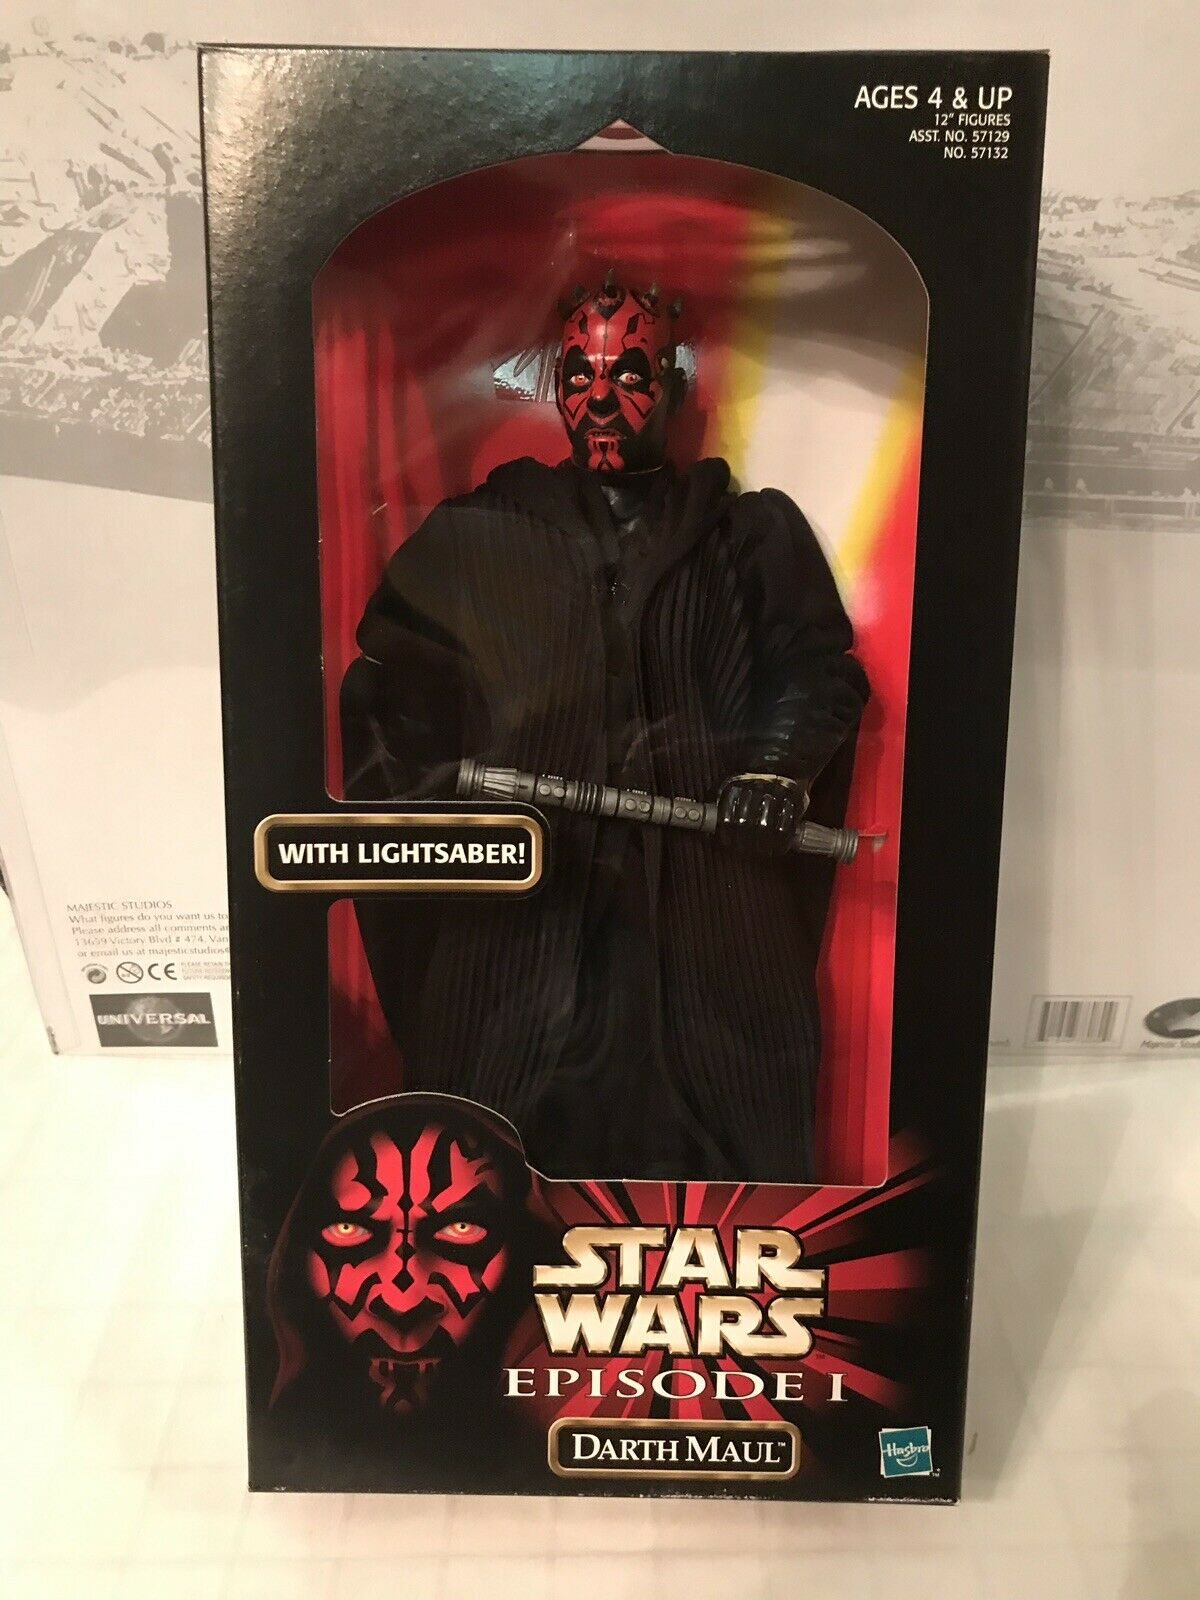 "Star Star Star Wars Episode I Action Collection Darth Maul 12"" 4a4042"